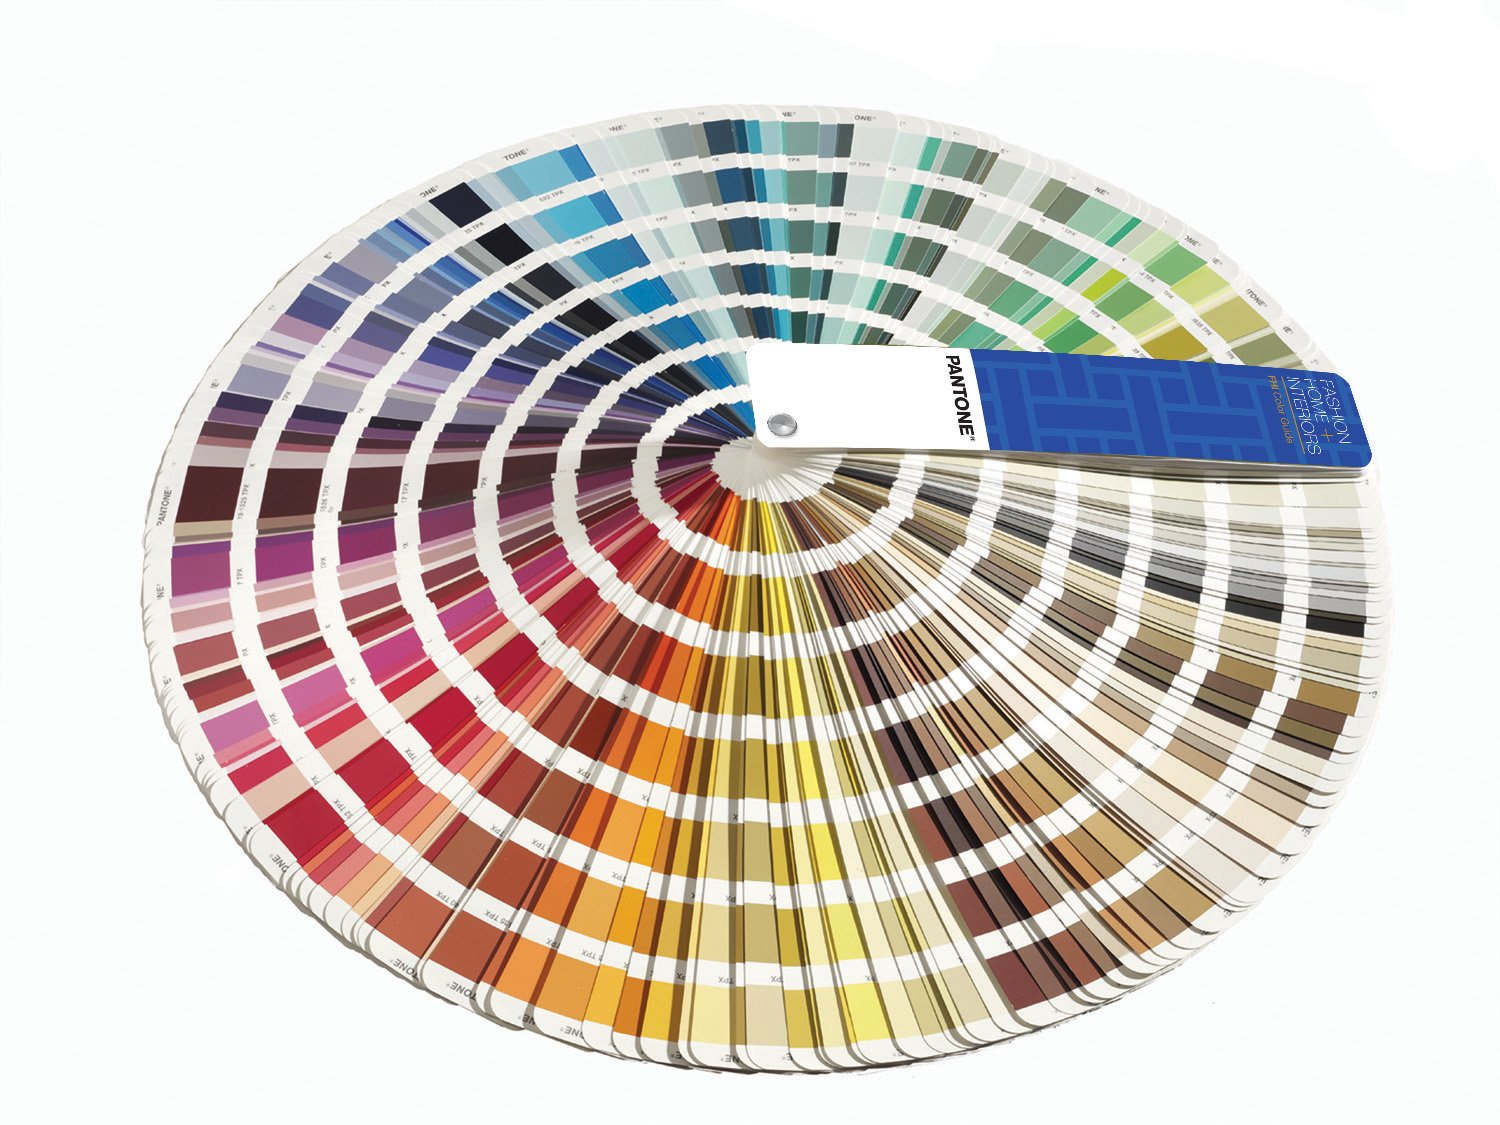 amazoncom pantone fgp200 fashion and home color guide home improvement - Pantone Color Swatch Book